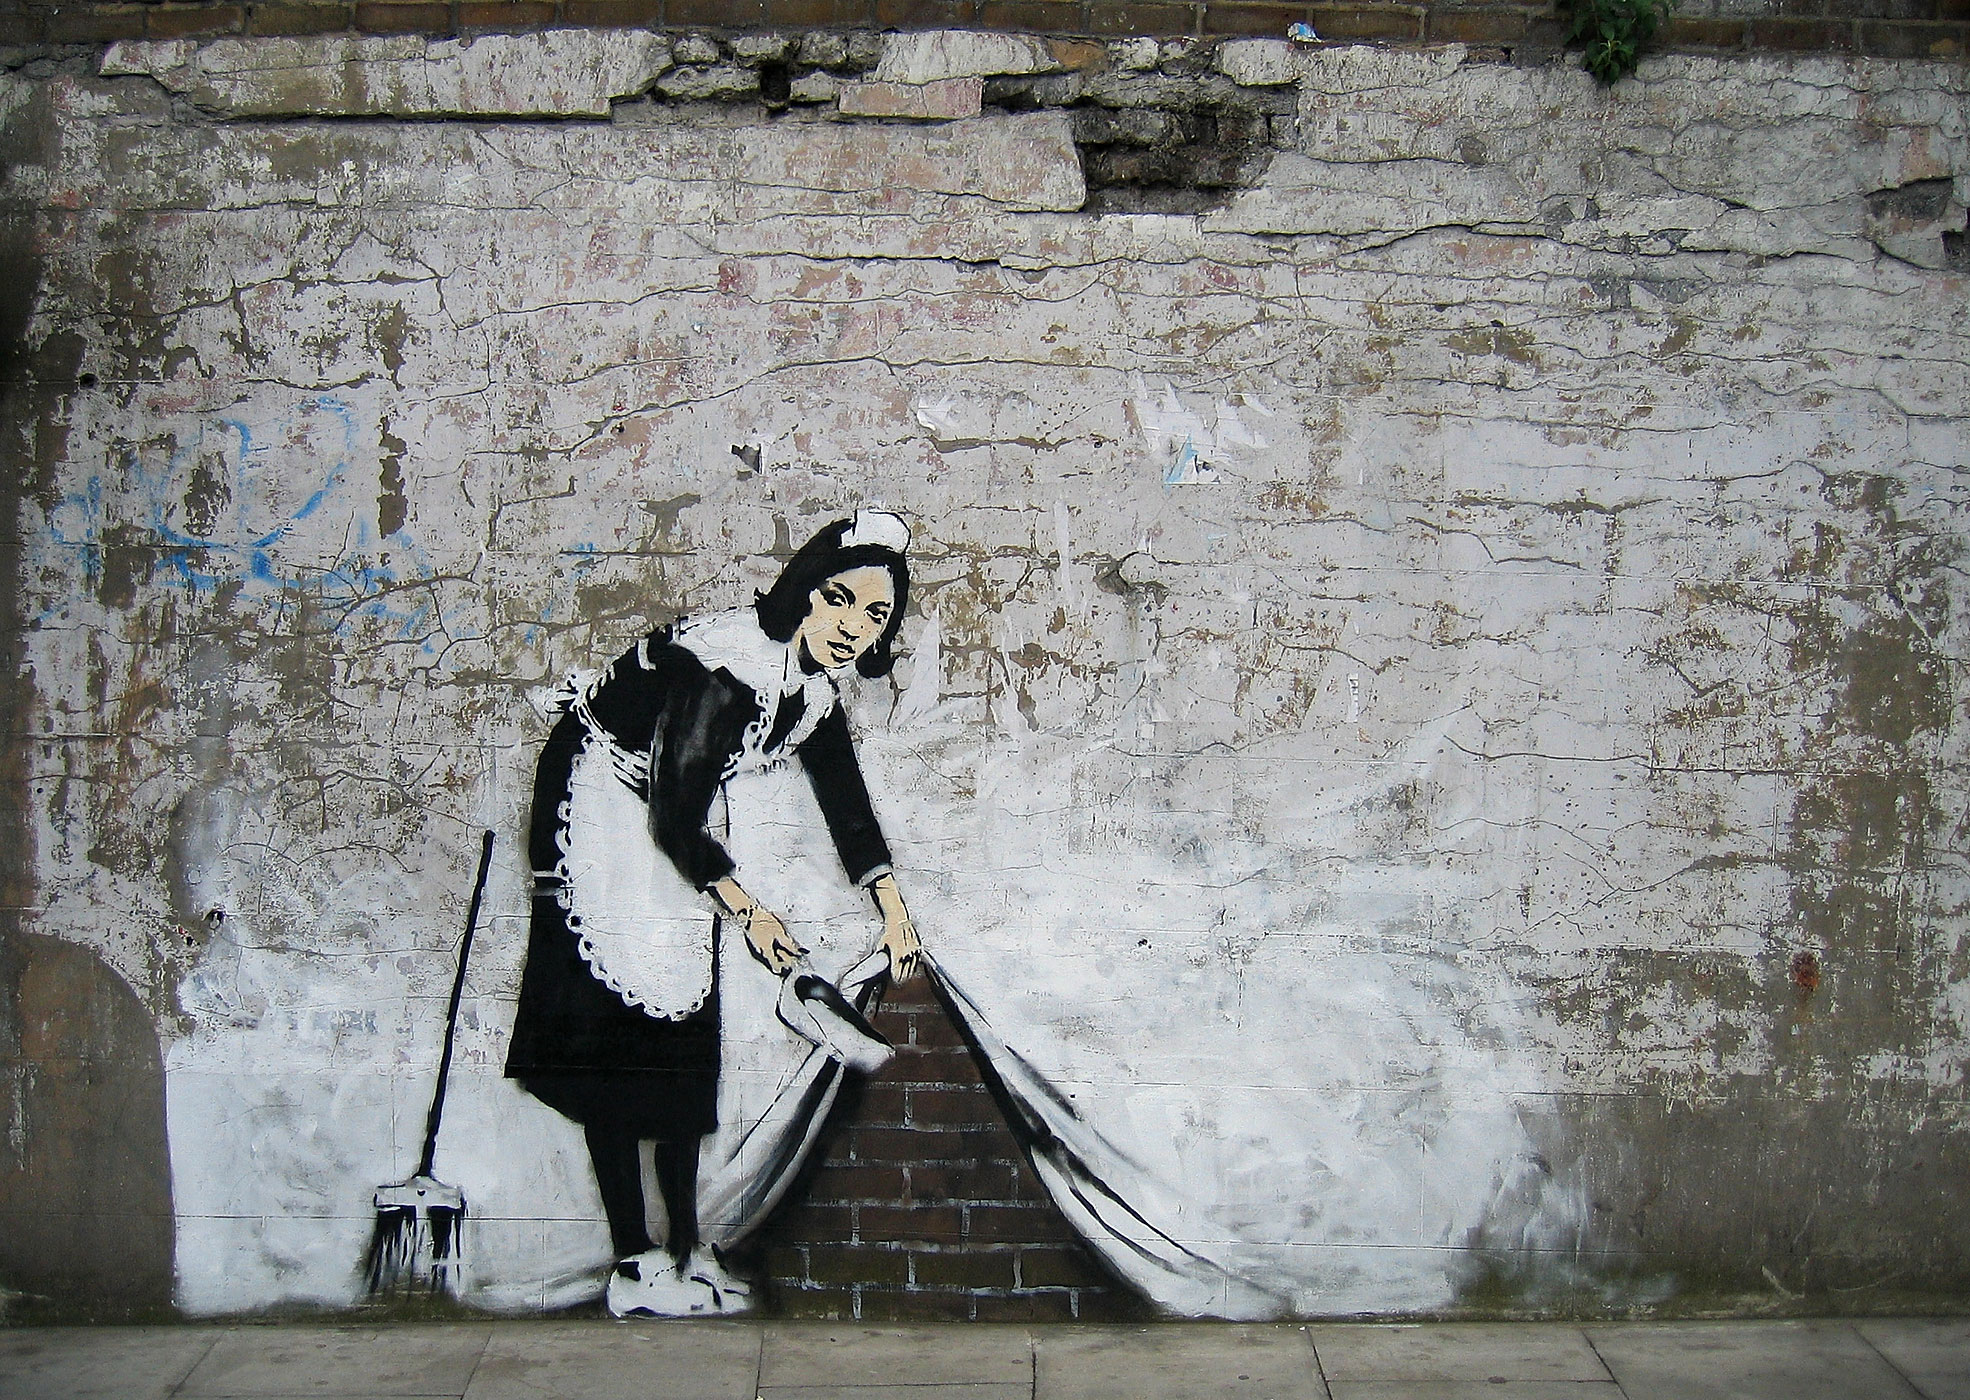 Banksy's 'Sweeping It Under The Carpet' is seen in London, England on May 16, 2006.